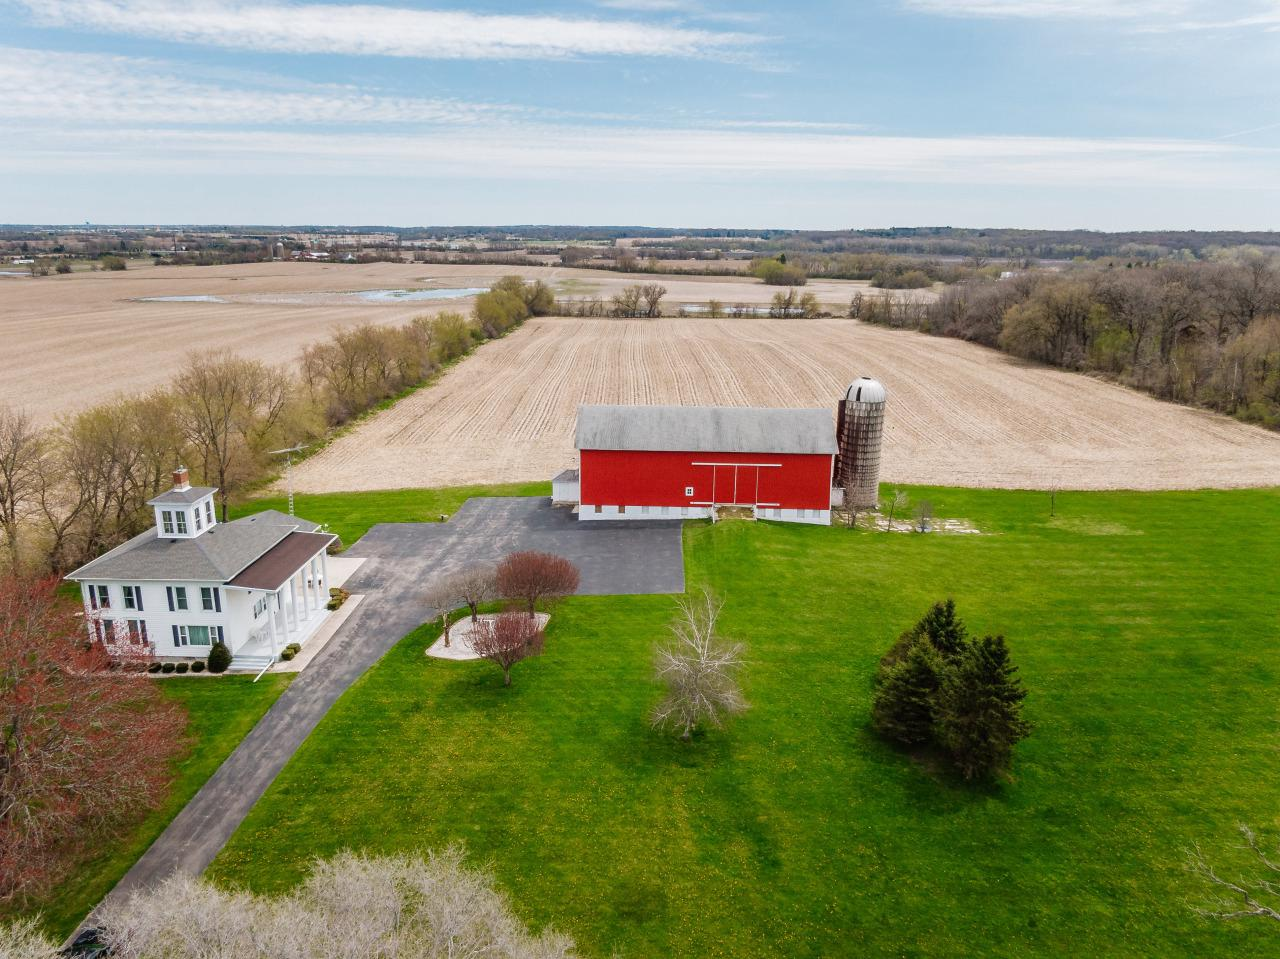 15 ACRE CLASSIC HOBBY FARM PROPERTY.  Stately 2-story, currently 2 family property with separate living on each level and private entrances. Easily combined, this is 4-bedroom 2.5 bath farm home with tall white pillars in front of home and cupola extending skyward. Gas fireplace in large living room, plenty of space in the kitchen with Master and second bedroom on main floor.   Large rec room, bedrooms 3 & 4, second kitchen and full bath on upper level.  LARGE BARN; great lawn with mature trees, level asphalt drive and large parking area and NEW WELL.  This is a GREAT OPPORTUNITY you have to see for yourself!